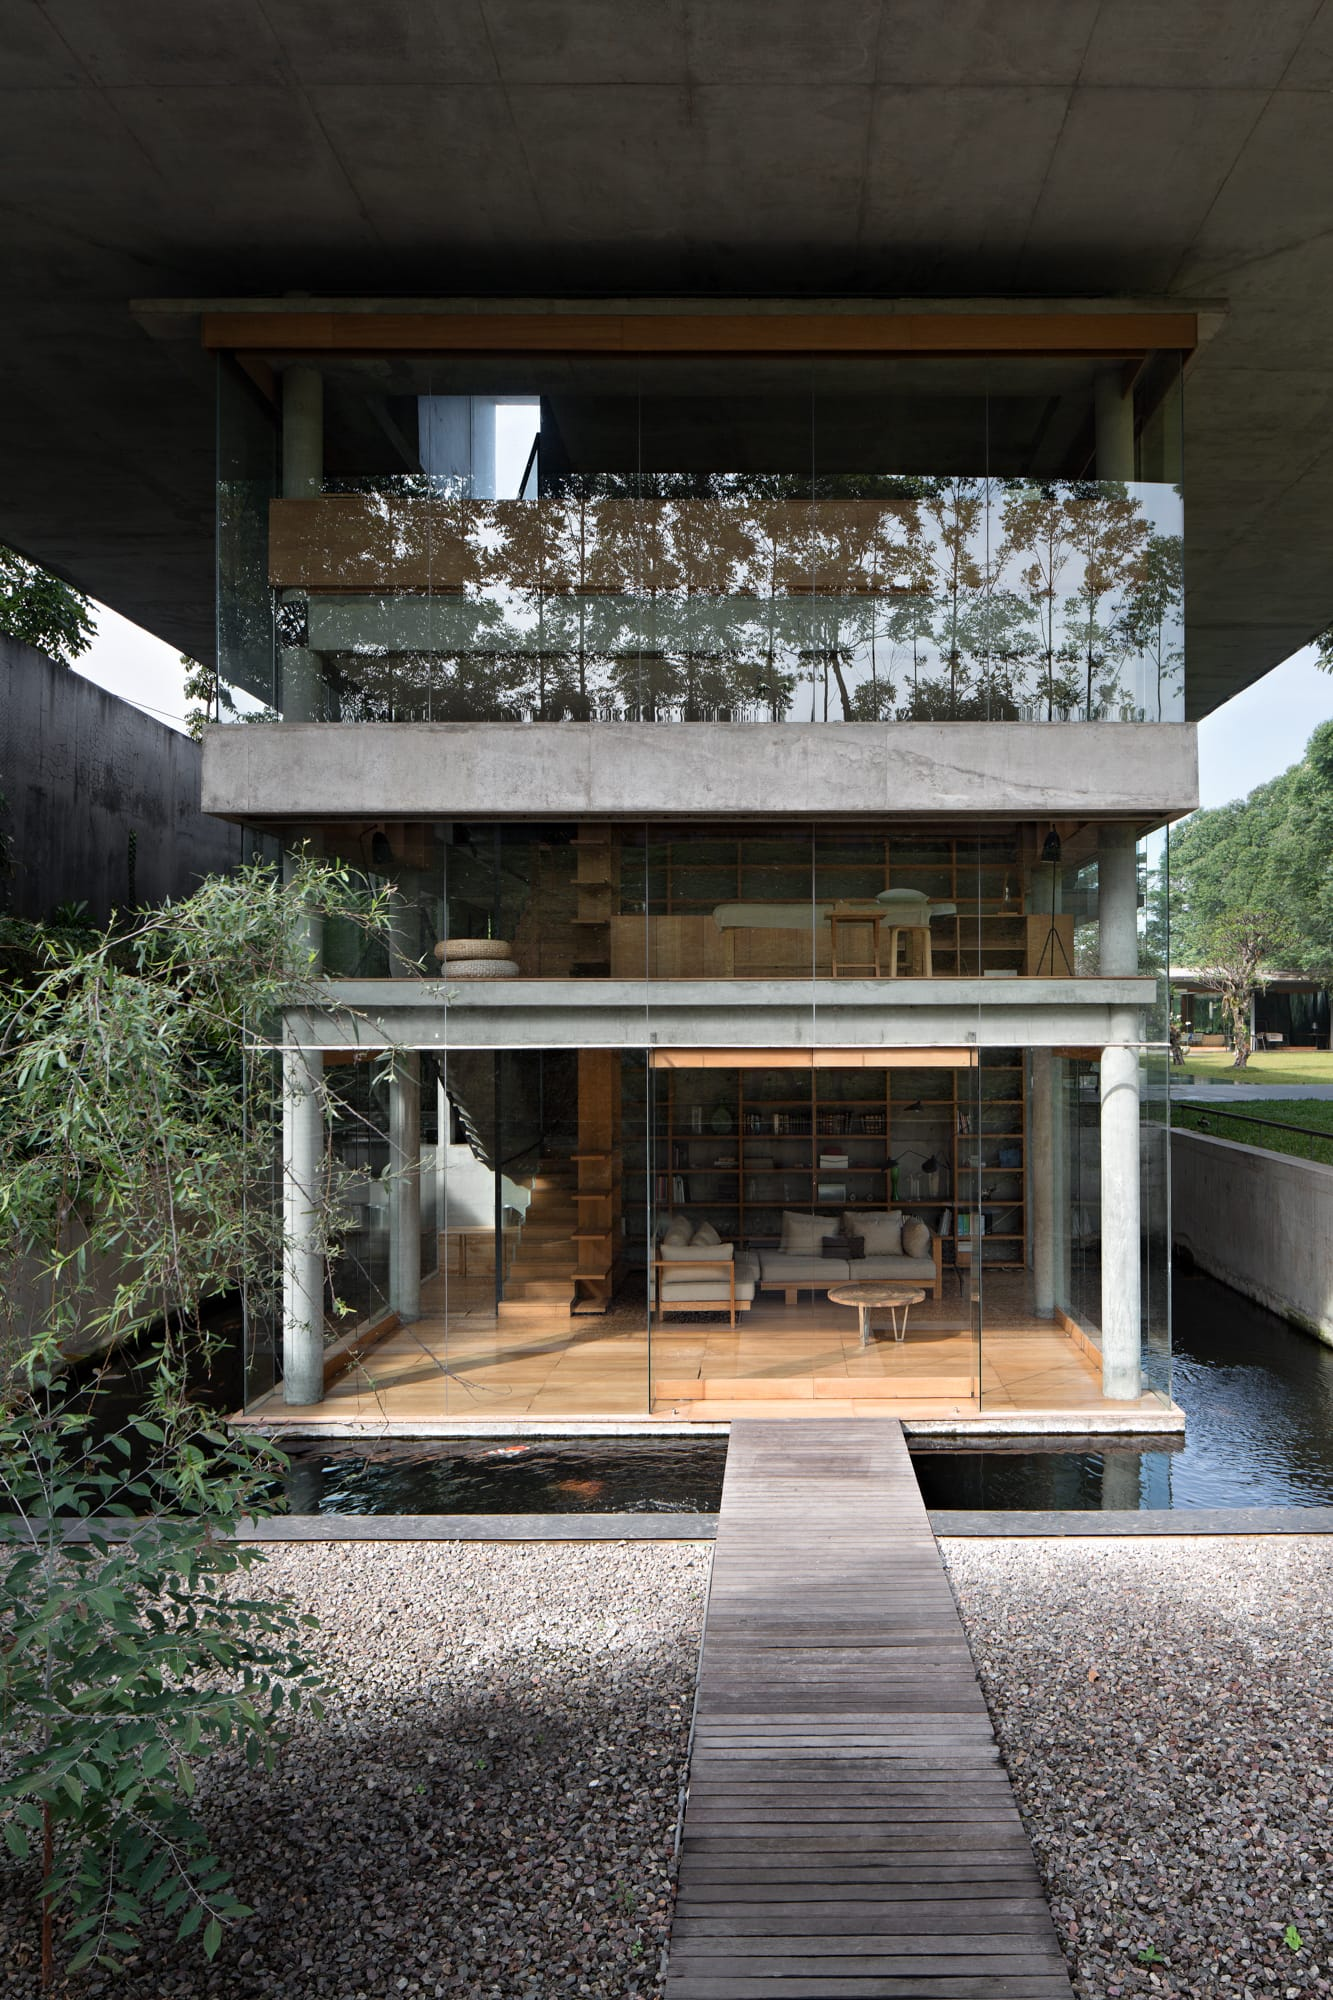 IH Residence in Bandung, Indonesia by Andra Matin.